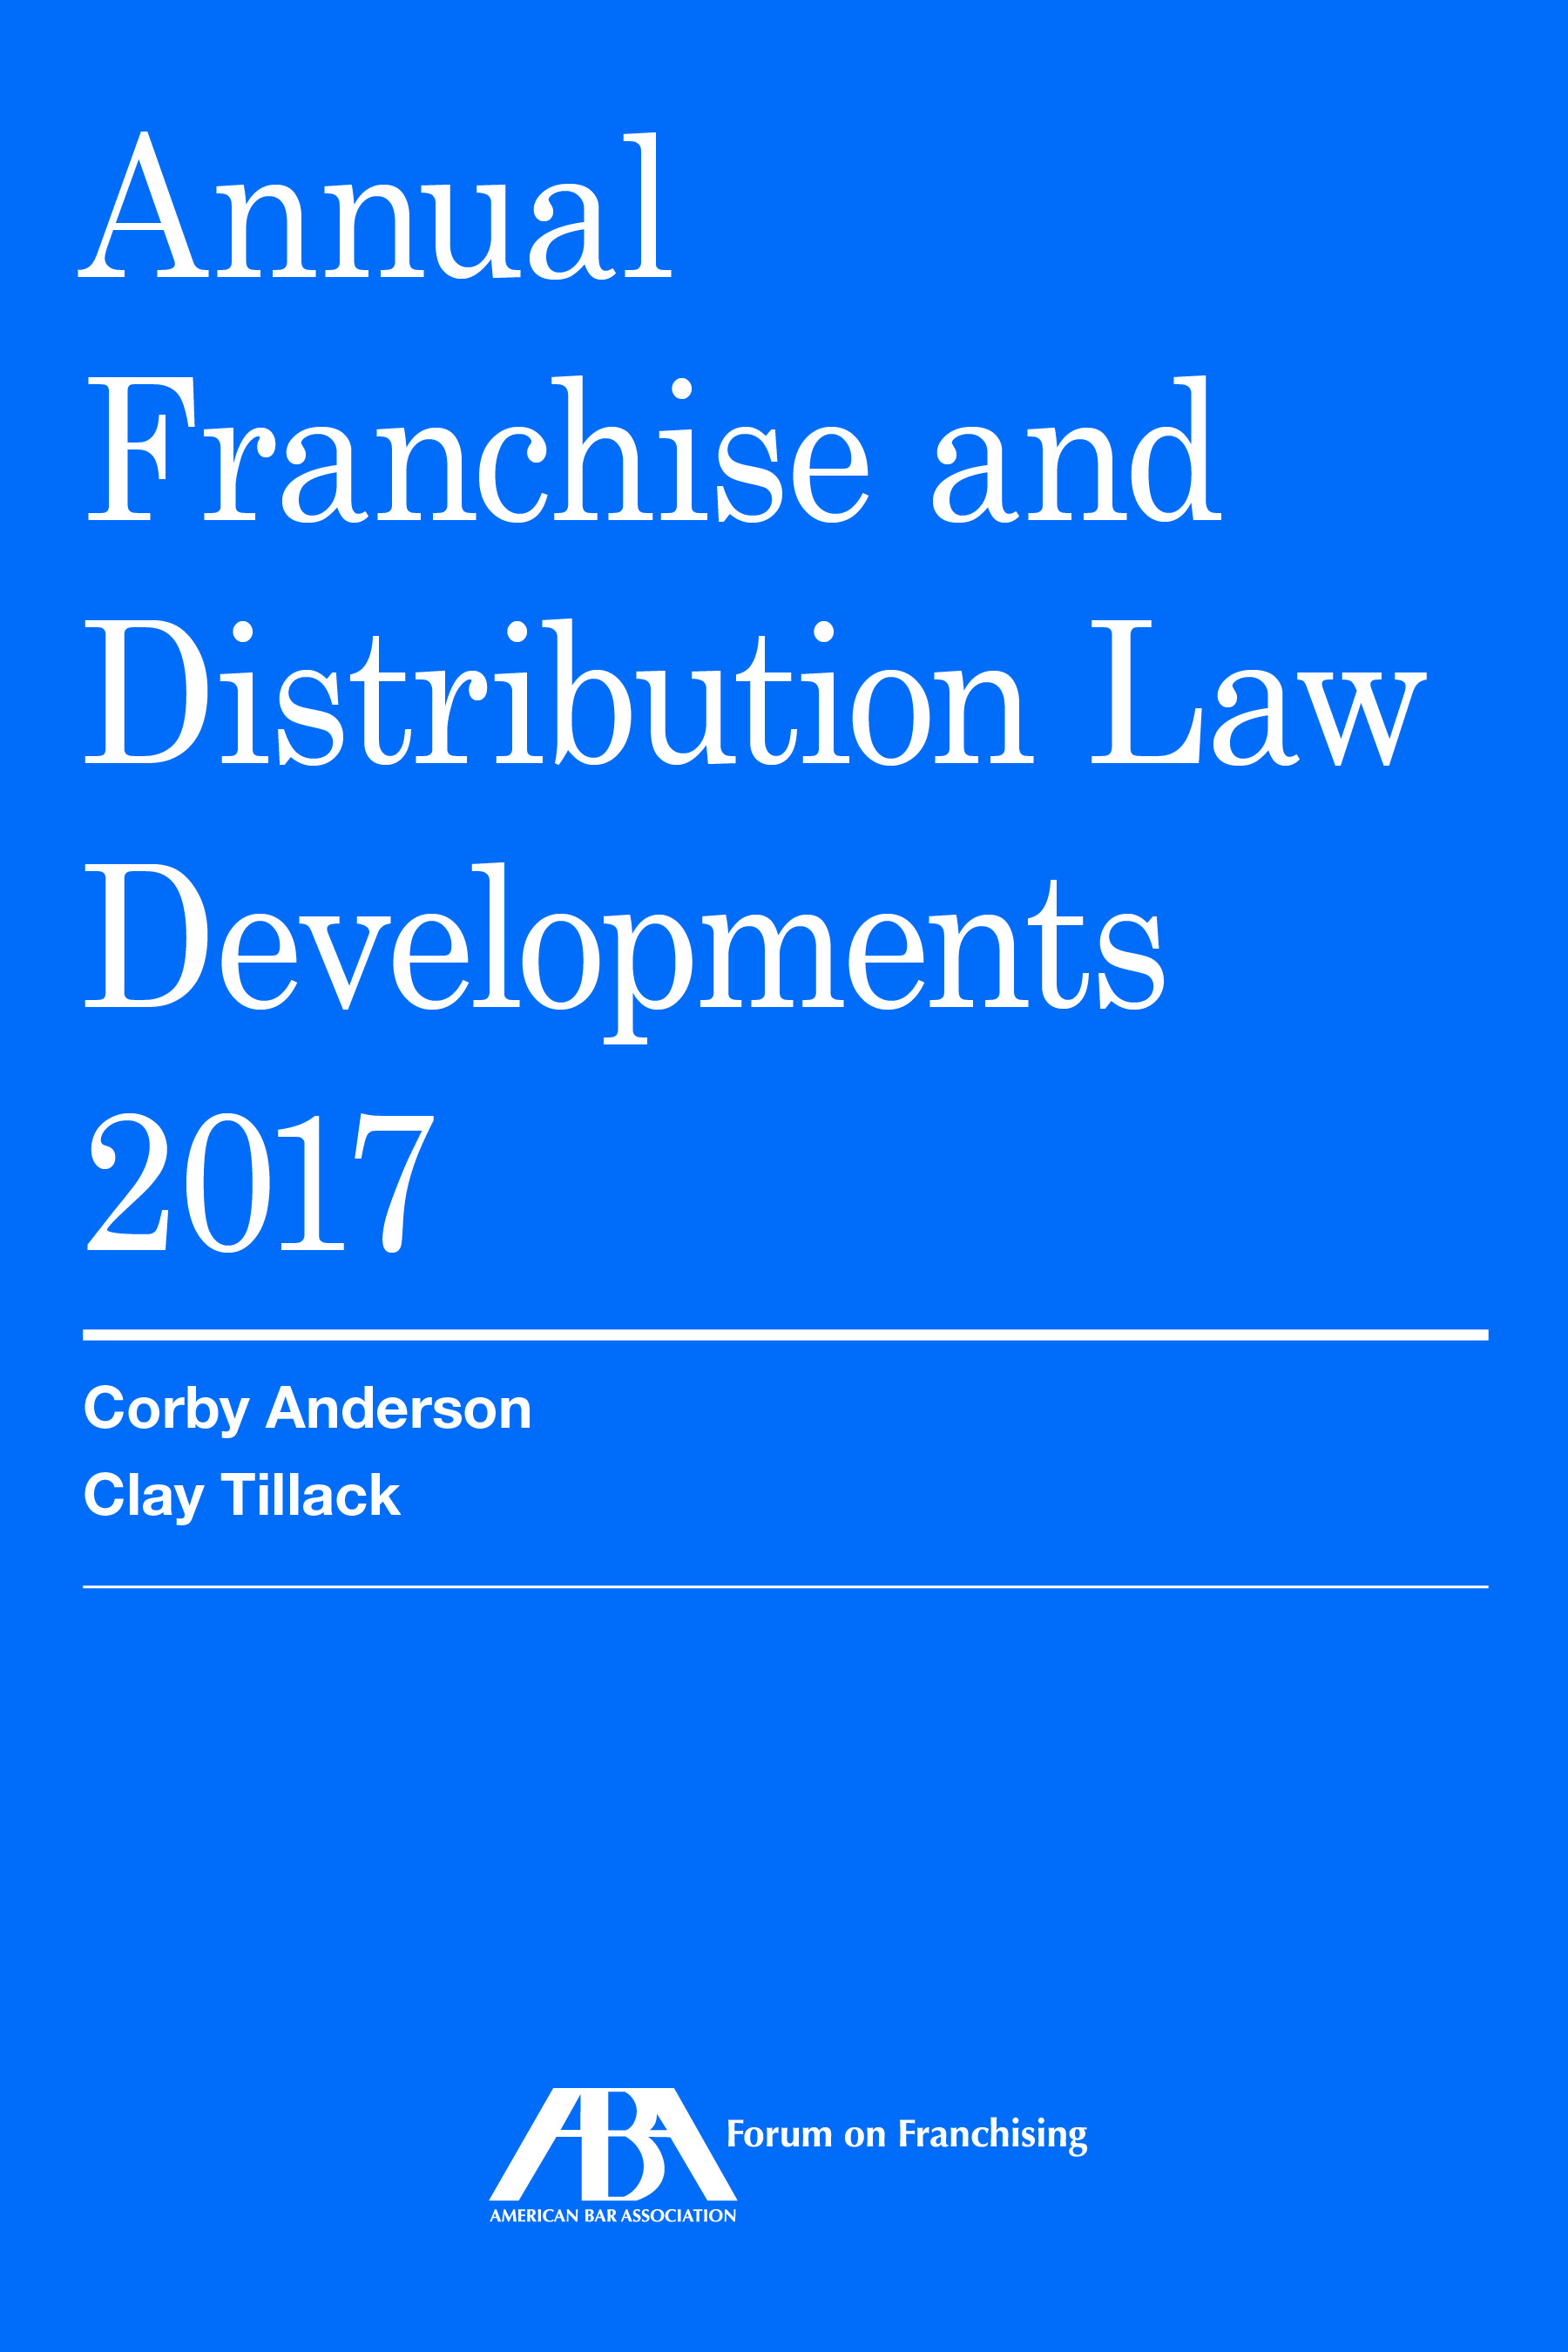 Annual Franchise and Distribution Law Developments, 2017